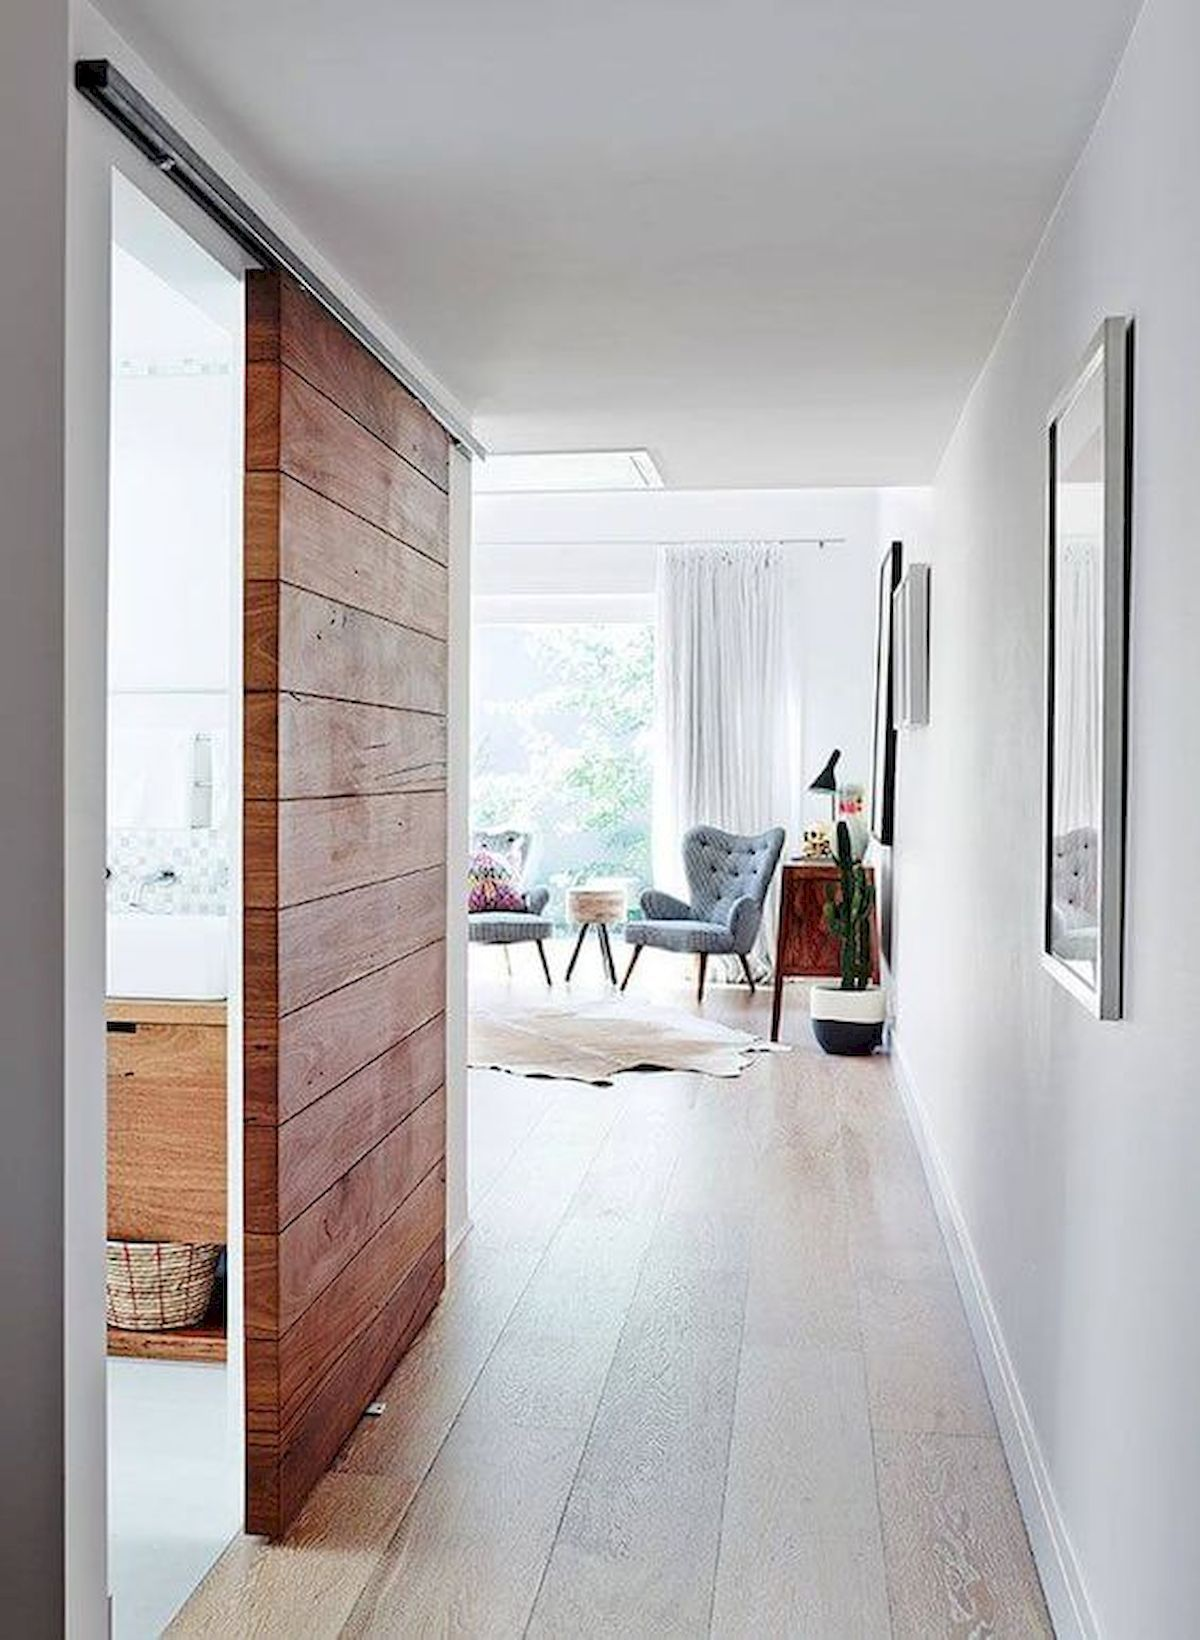 Pin By Naveed Ahmad Qureshi On Doors: 50 Best Sliding Doors Design Ideas